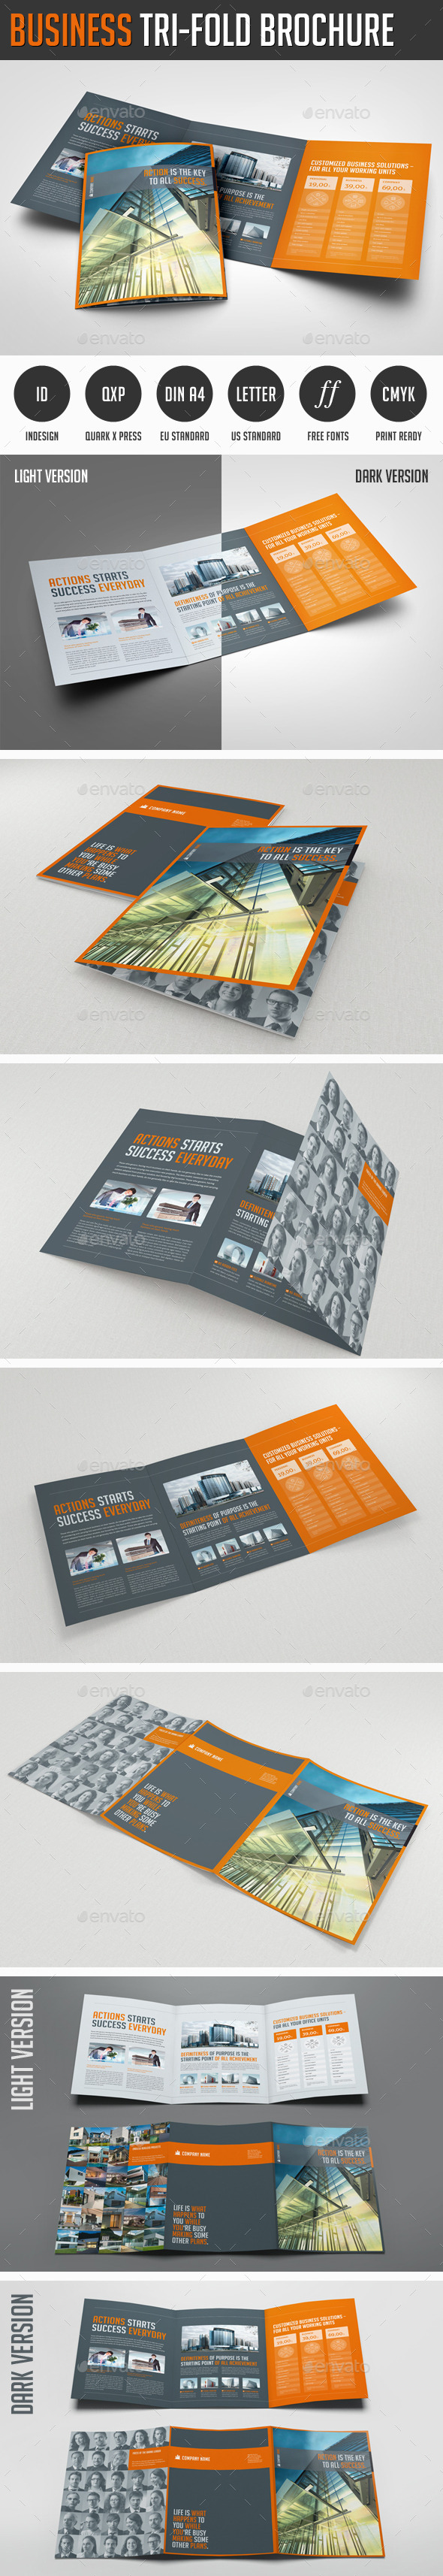 GraphicRiver Business Trifold Brochure 11627404